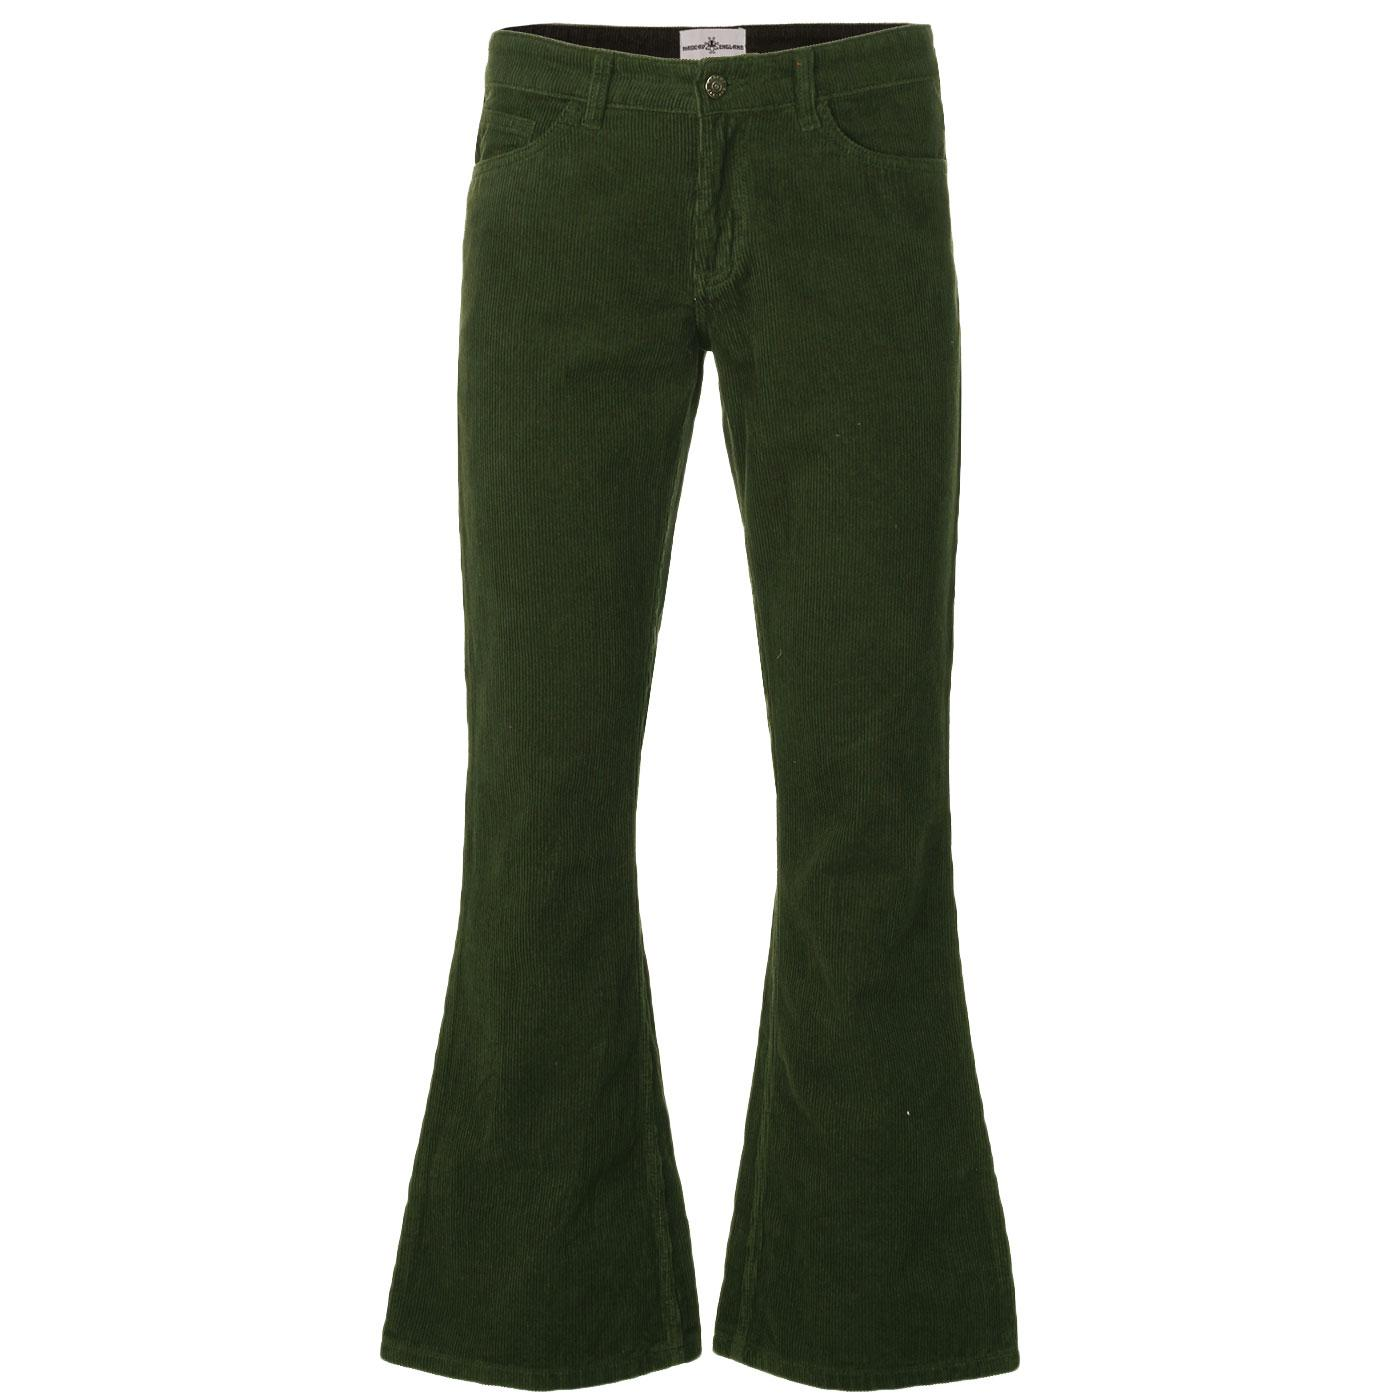 Madcap England Retro 70s Cord Killer Flares in Forest Green